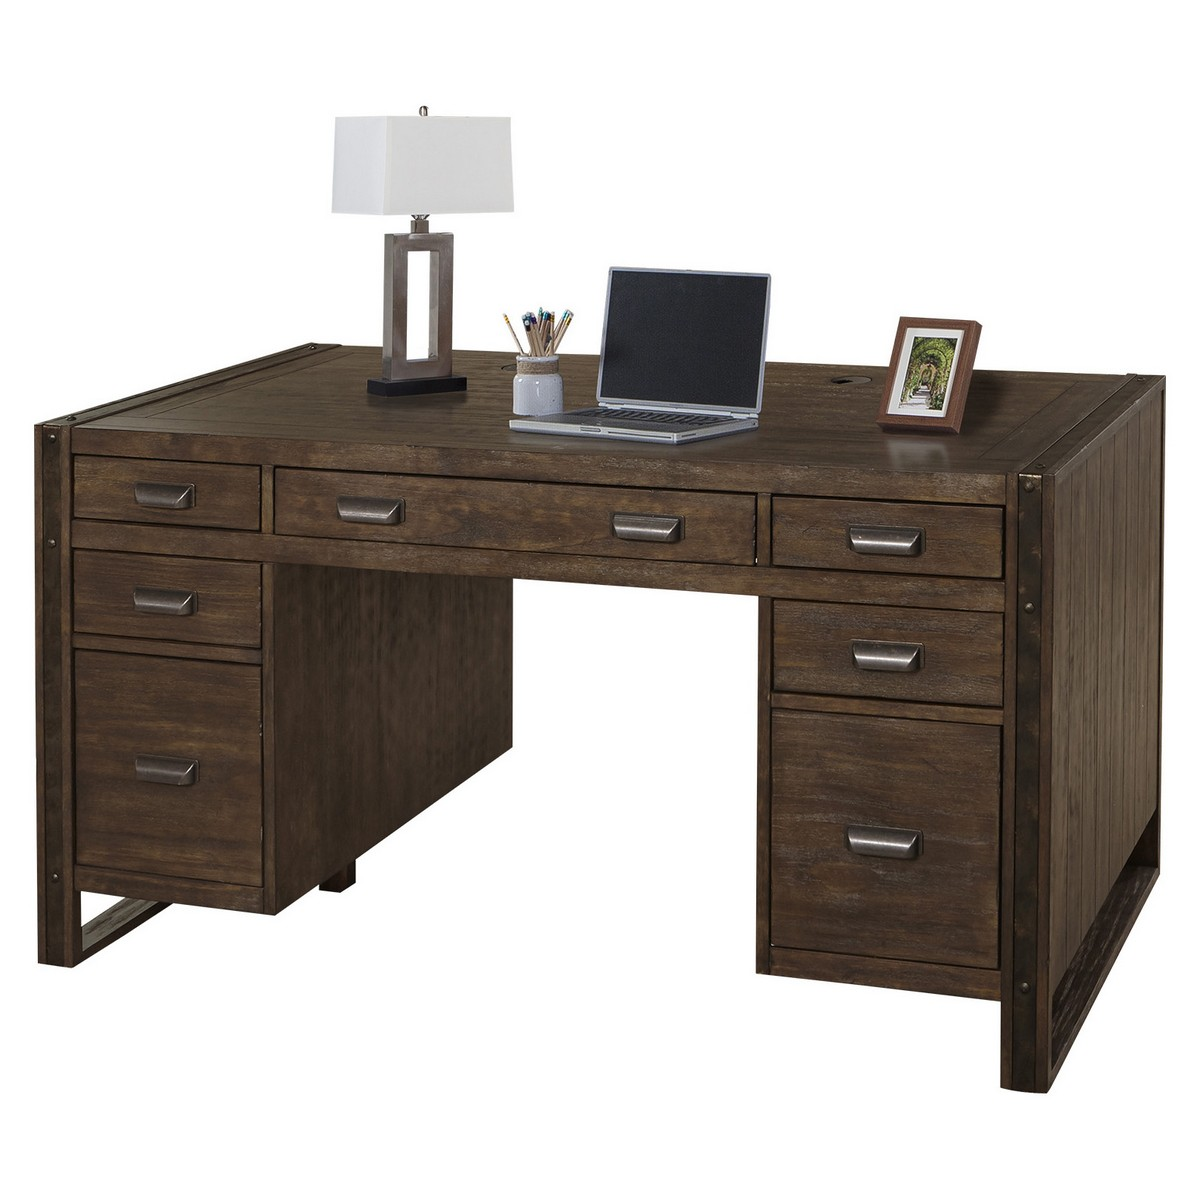 Parker House Brooklyn 60-inch Pedestal Desk - Antique Burnished Pine